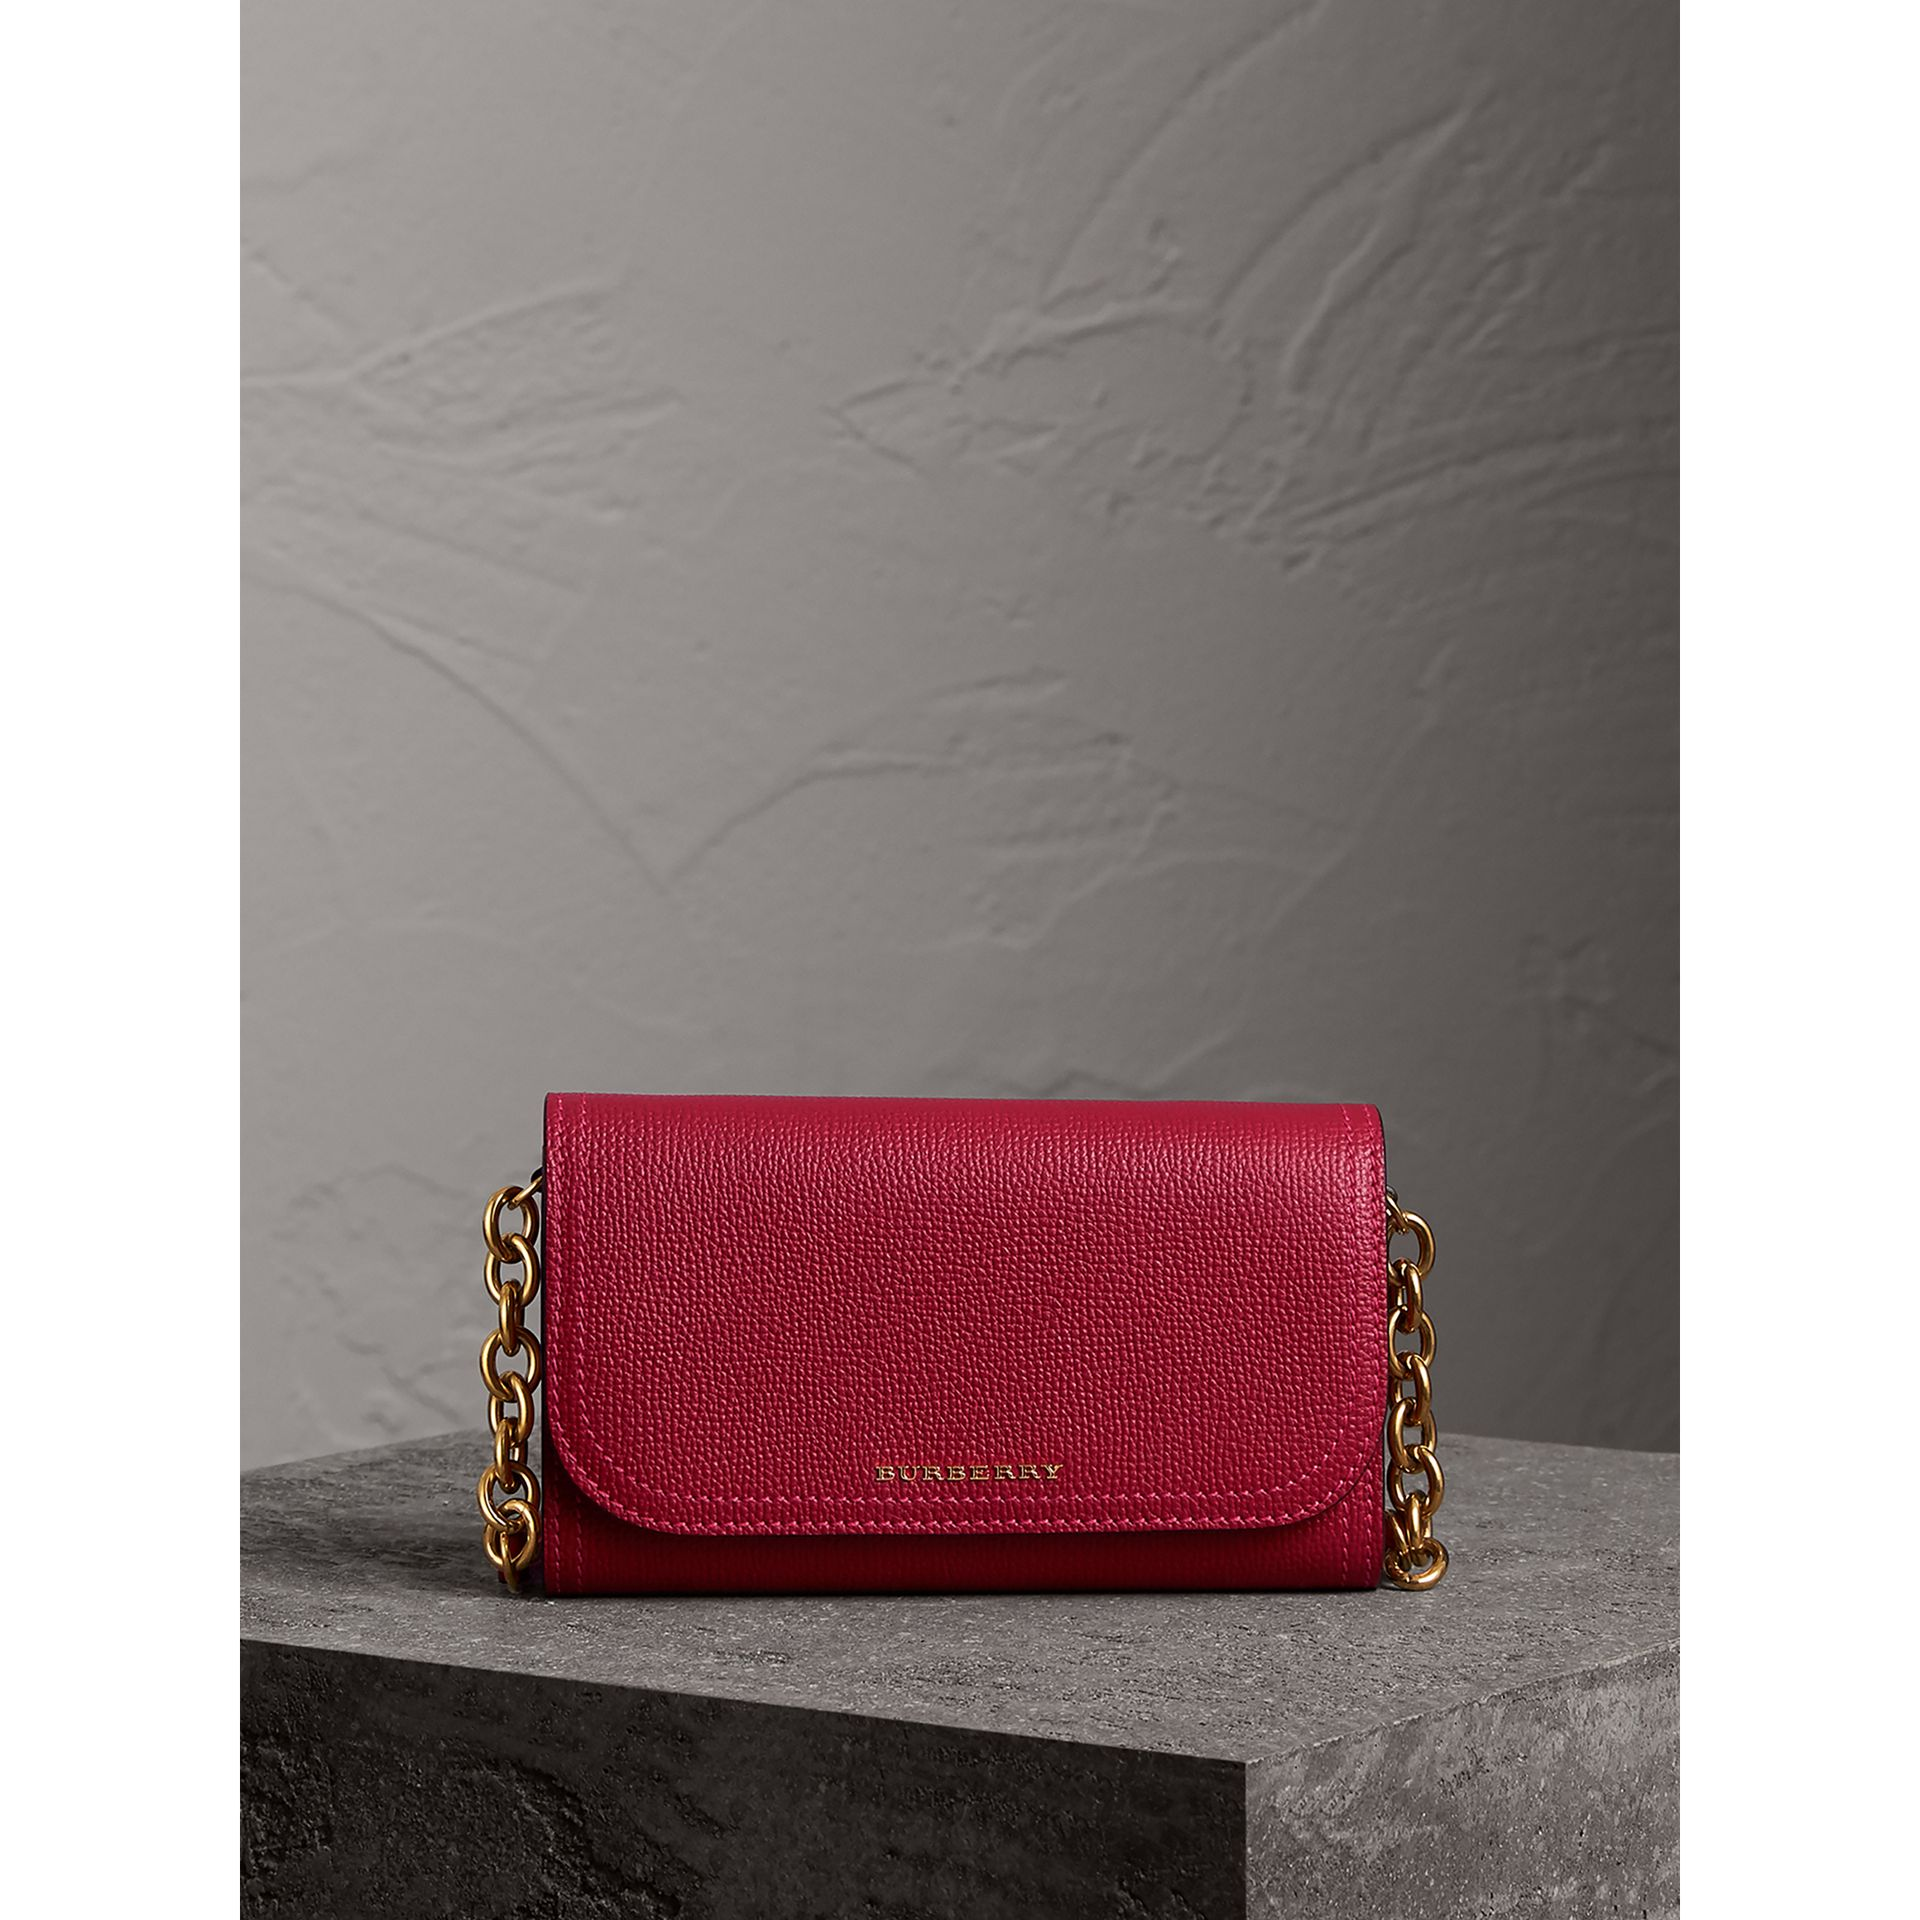 Topstitch Detail Leather Wallet with Detachable Strap in Parade Red/multicolour - Women | Burberry Singapore - gallery image 5